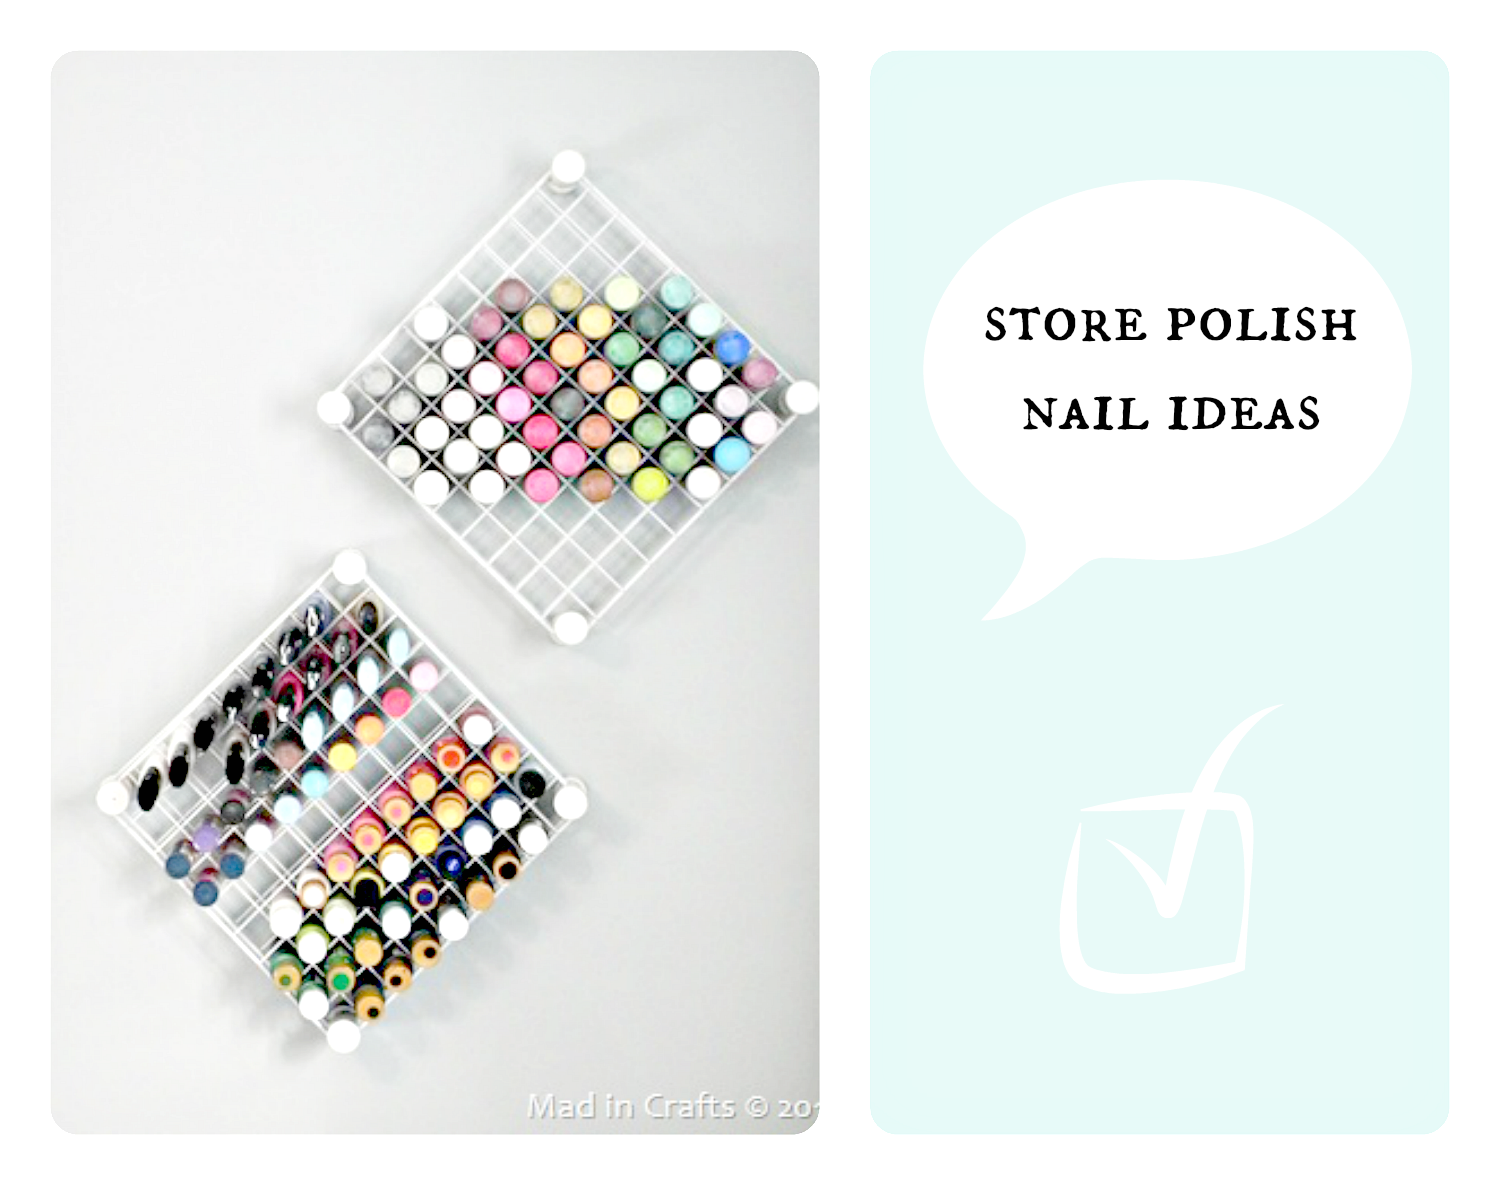 diy for polish nail store